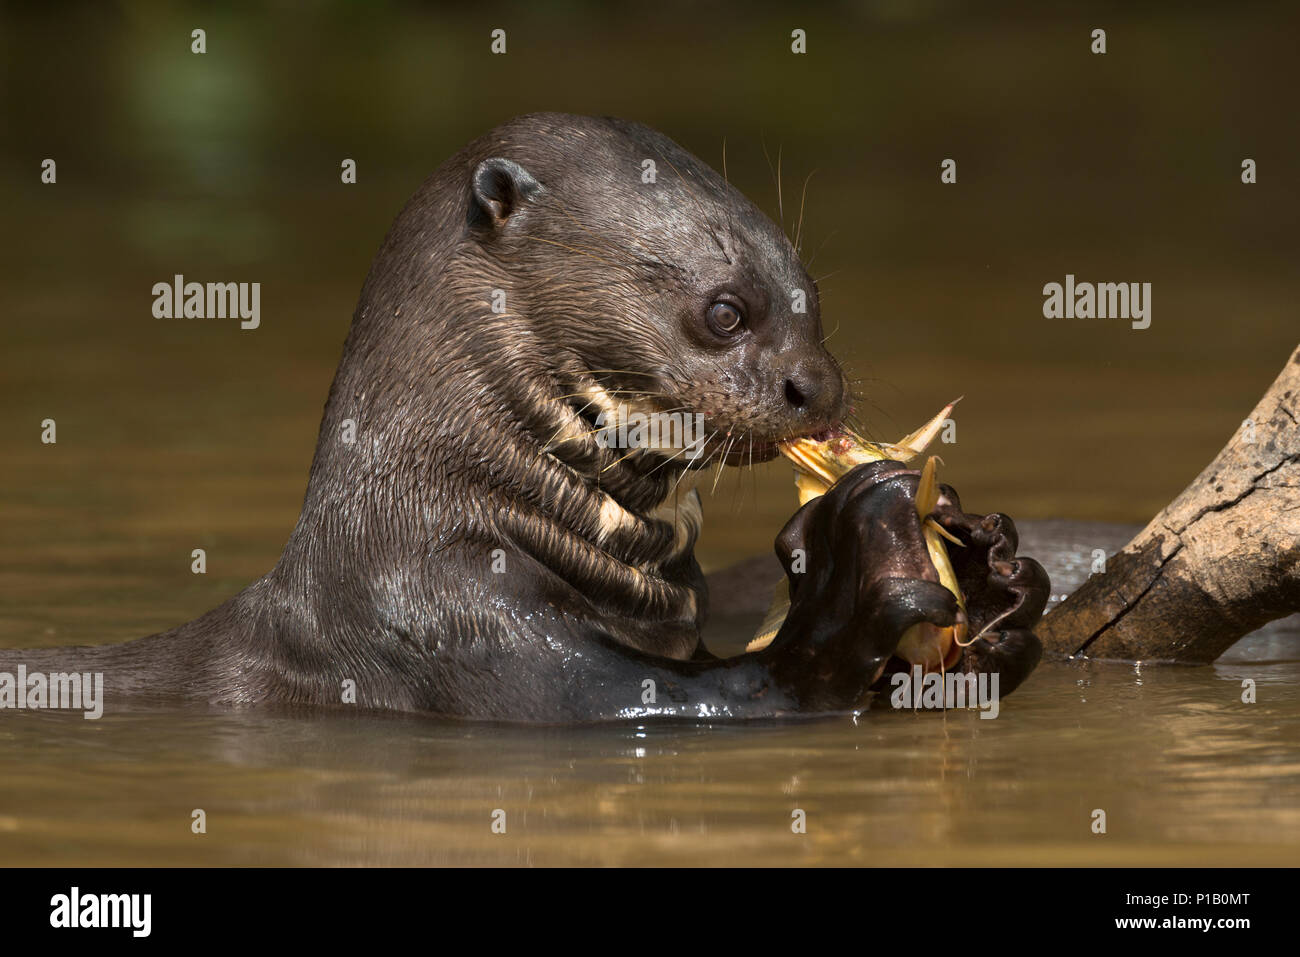 A Giant Anteater eating a catfish in the Pantanal. - Stock Image